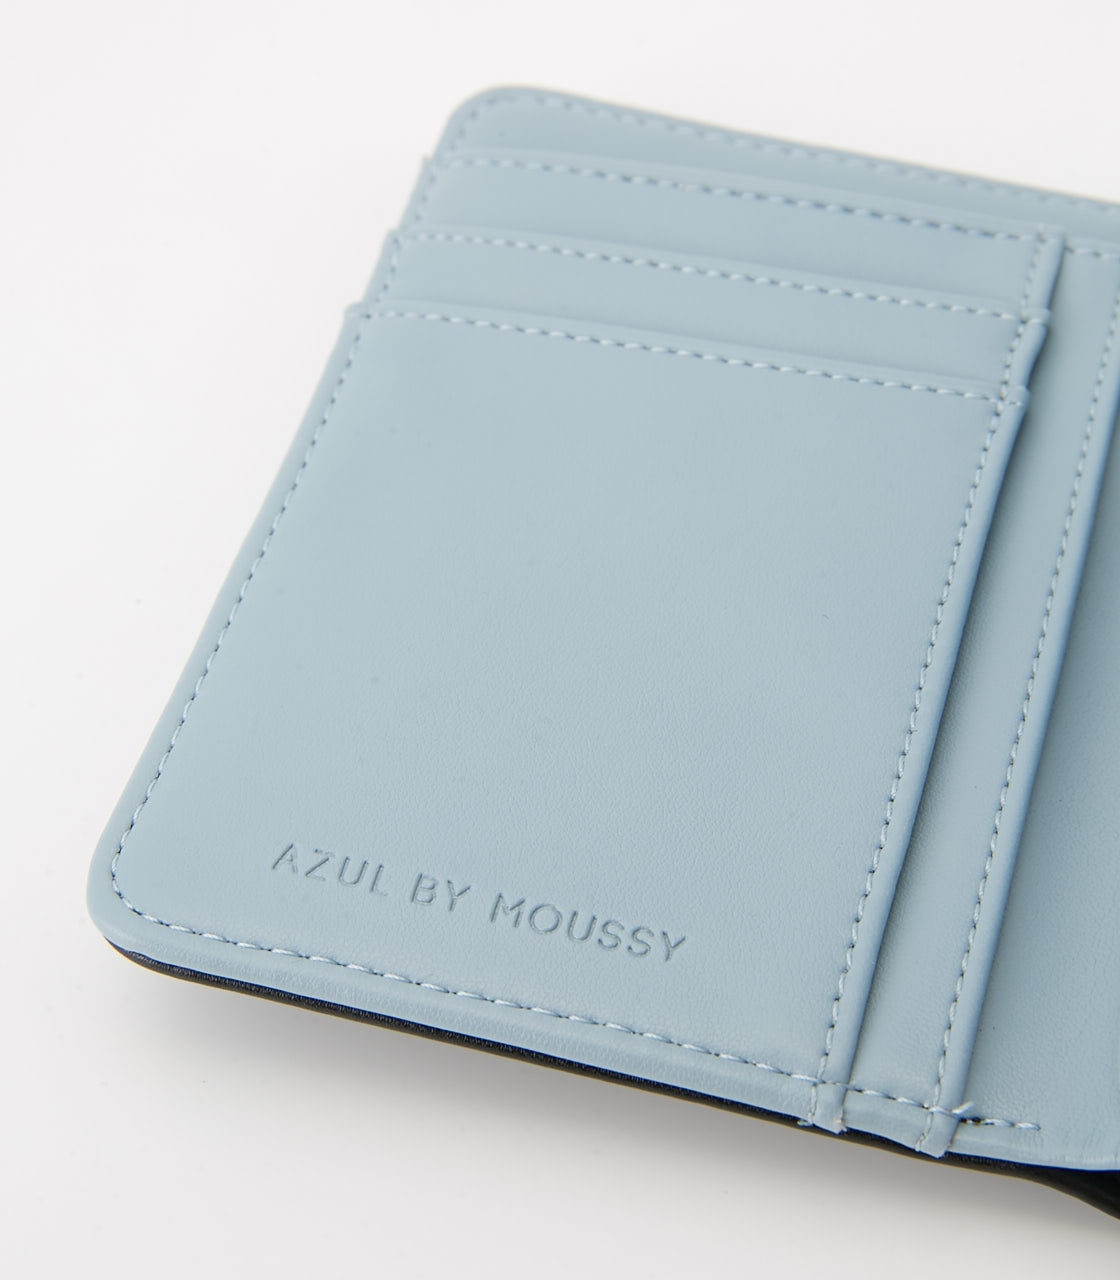 【AZUL BY MOUSSY】COLOR POINT WALLET 詳細画像 BLK 5